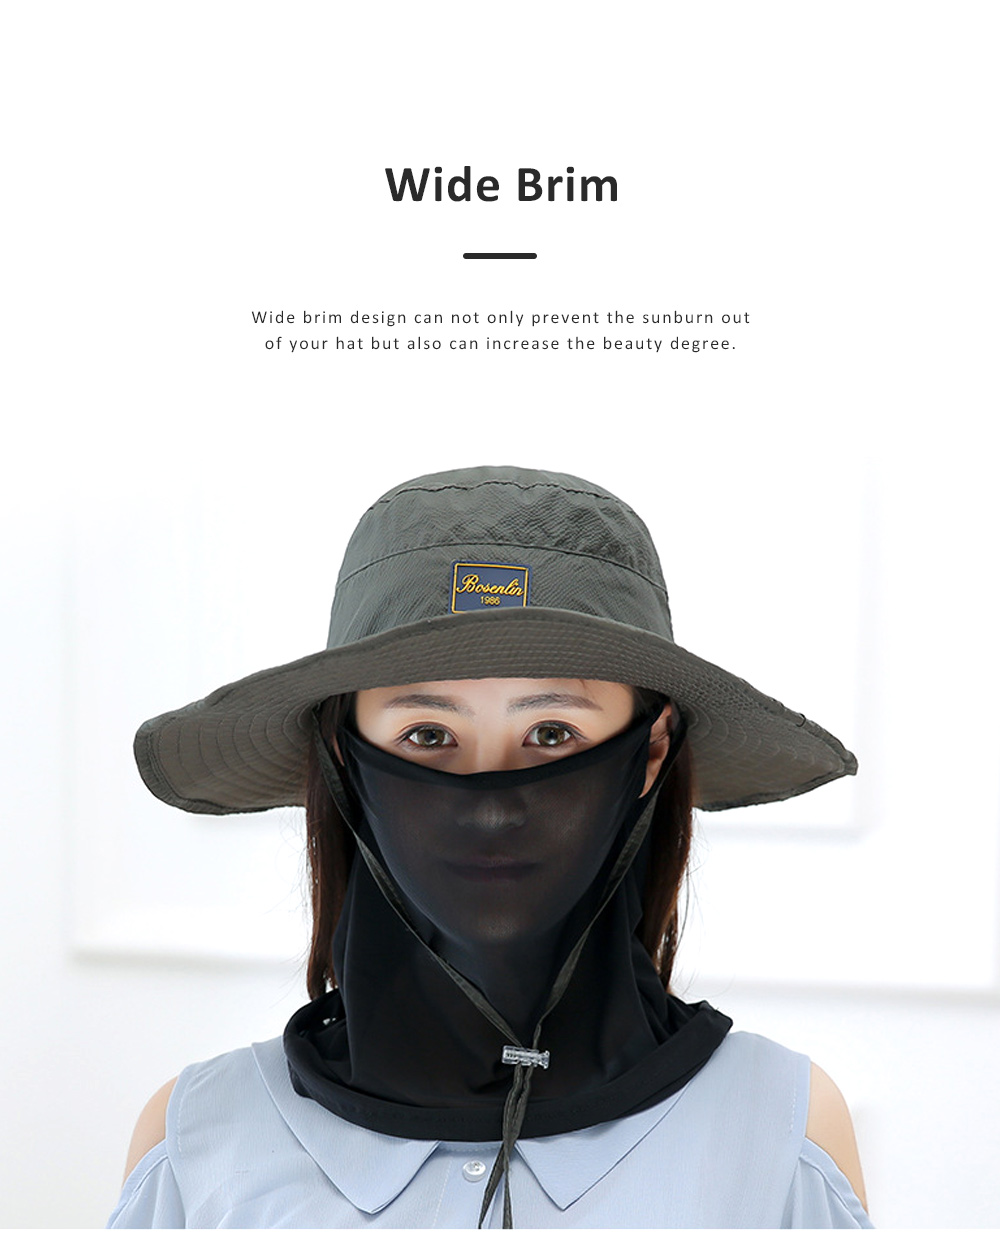 Unisex Sunscreen Hat for Outdoor Enthusiast, Mesh Breathable Mask Brand Logo Alpine Cap For Men Women Wide Brim Adjustable Wind Rope Outdoor Appliances 5